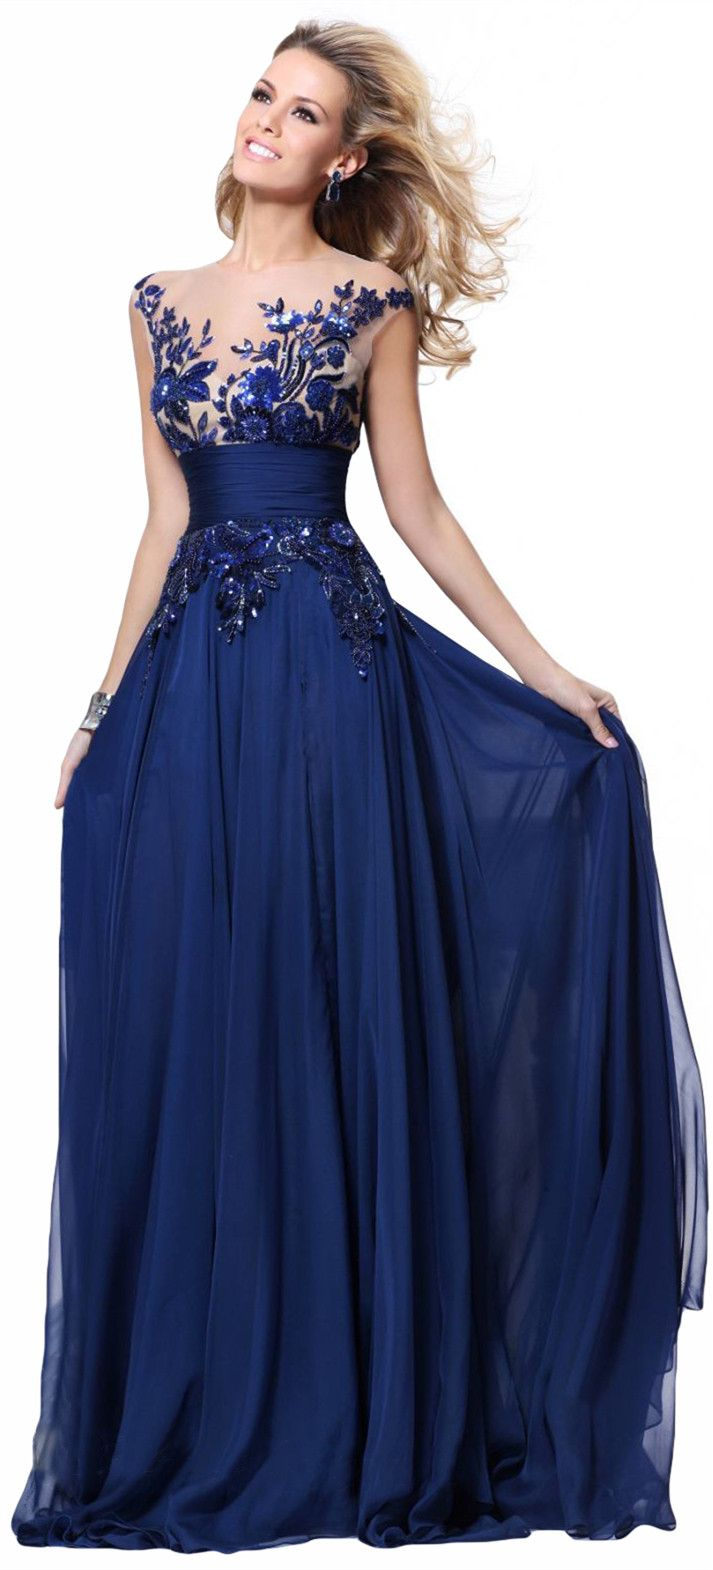 Delicate Royal Blue Lace Evening Gown, Beautiful Top Detail with Magnificent Sexy Back, 90$ on Amazon.